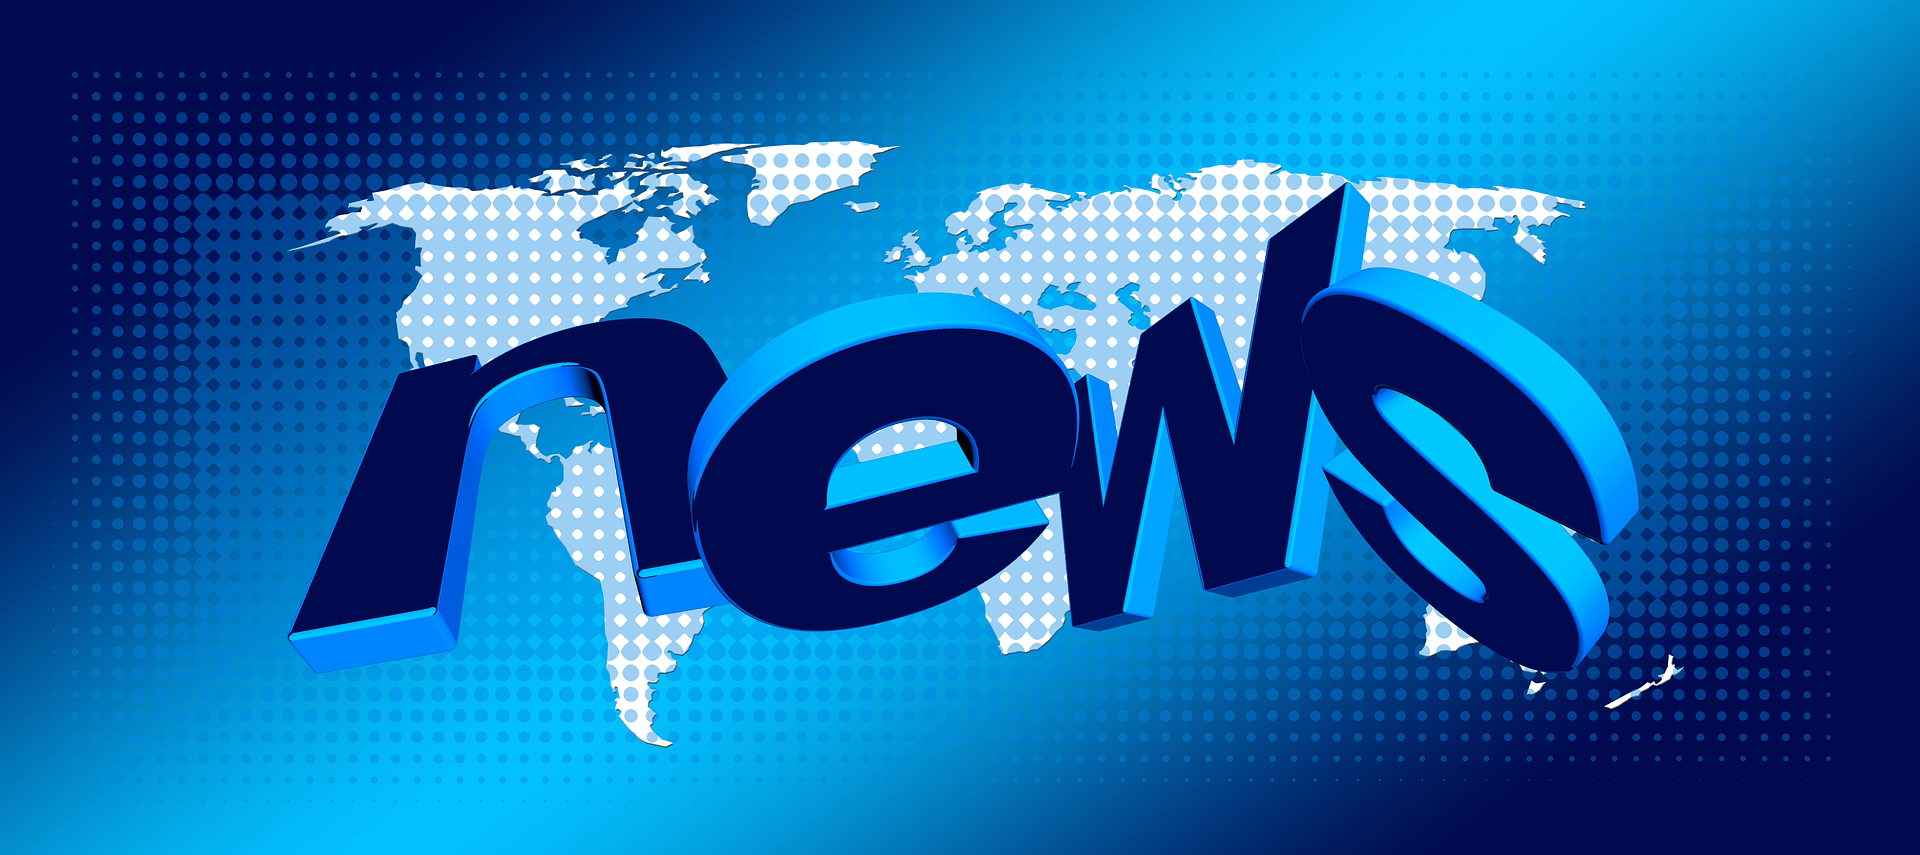 World News Special | Top News Summary – 15/JUN/2019 | Quick View